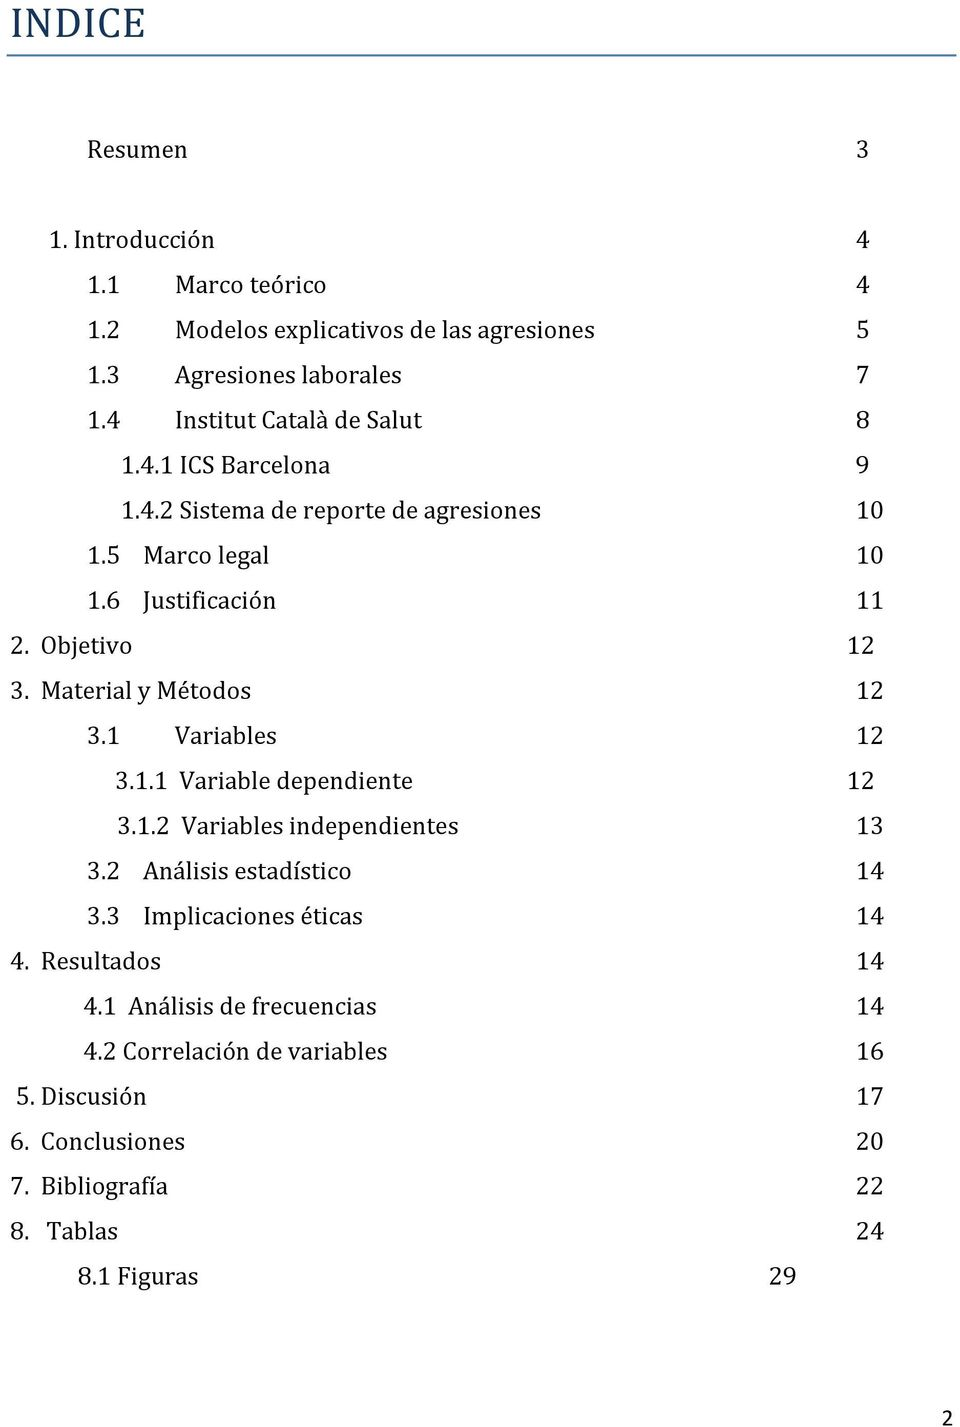 Material y Métodos 12 3.1 Variables 12 3.1.1 Variable dependiente 12 3.1.2 Variables independientes 13 3.2 Análisis estadístico 14 3.